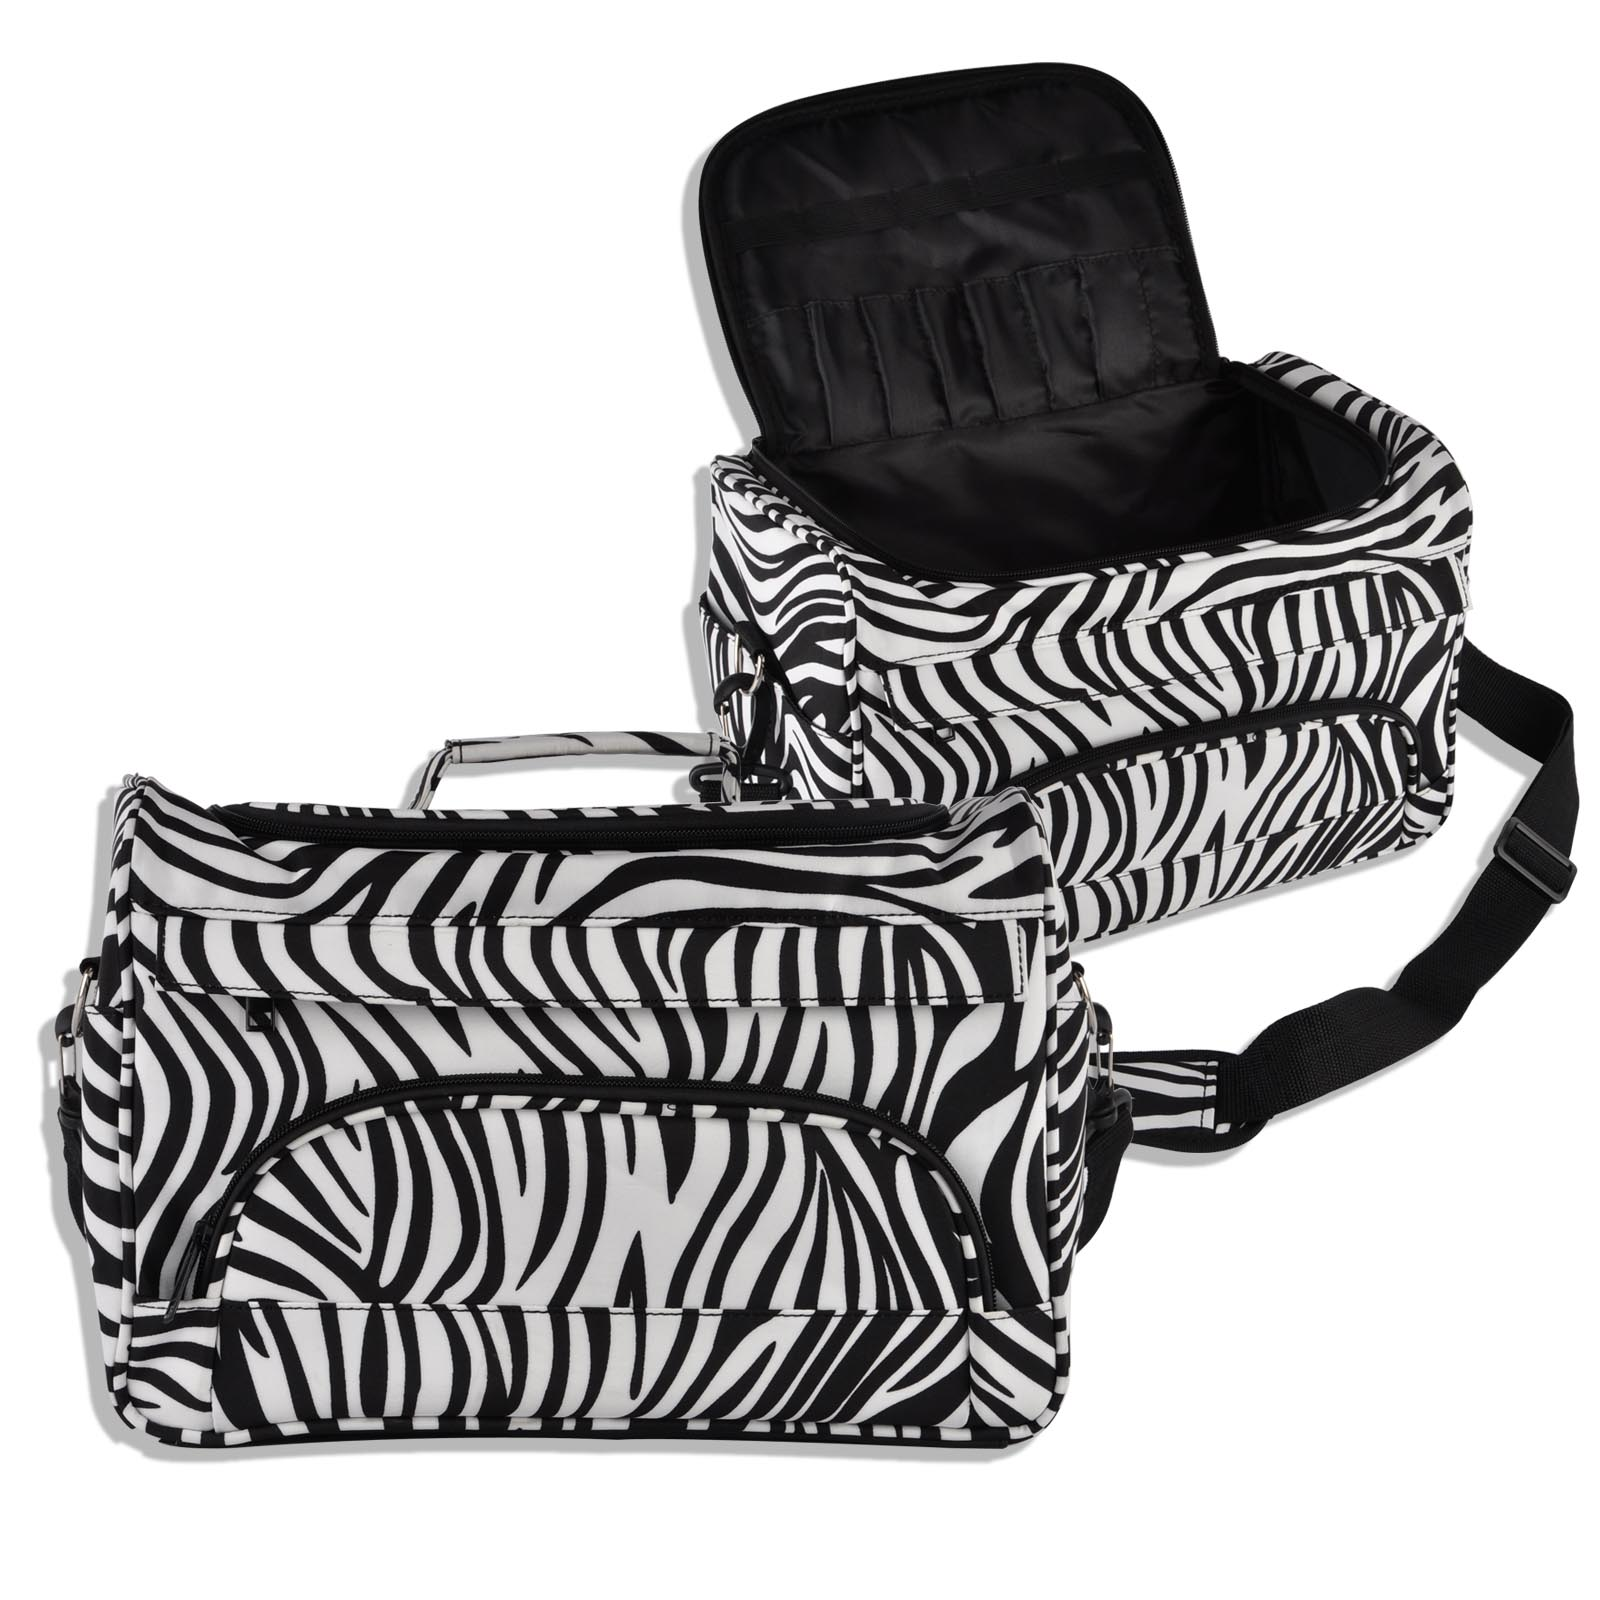 Mayitr 1pc Professional Barber Hair Tool Bag High Quality Hairdressing Salon Zebra Portable Tool Case For Hair Tools Storage